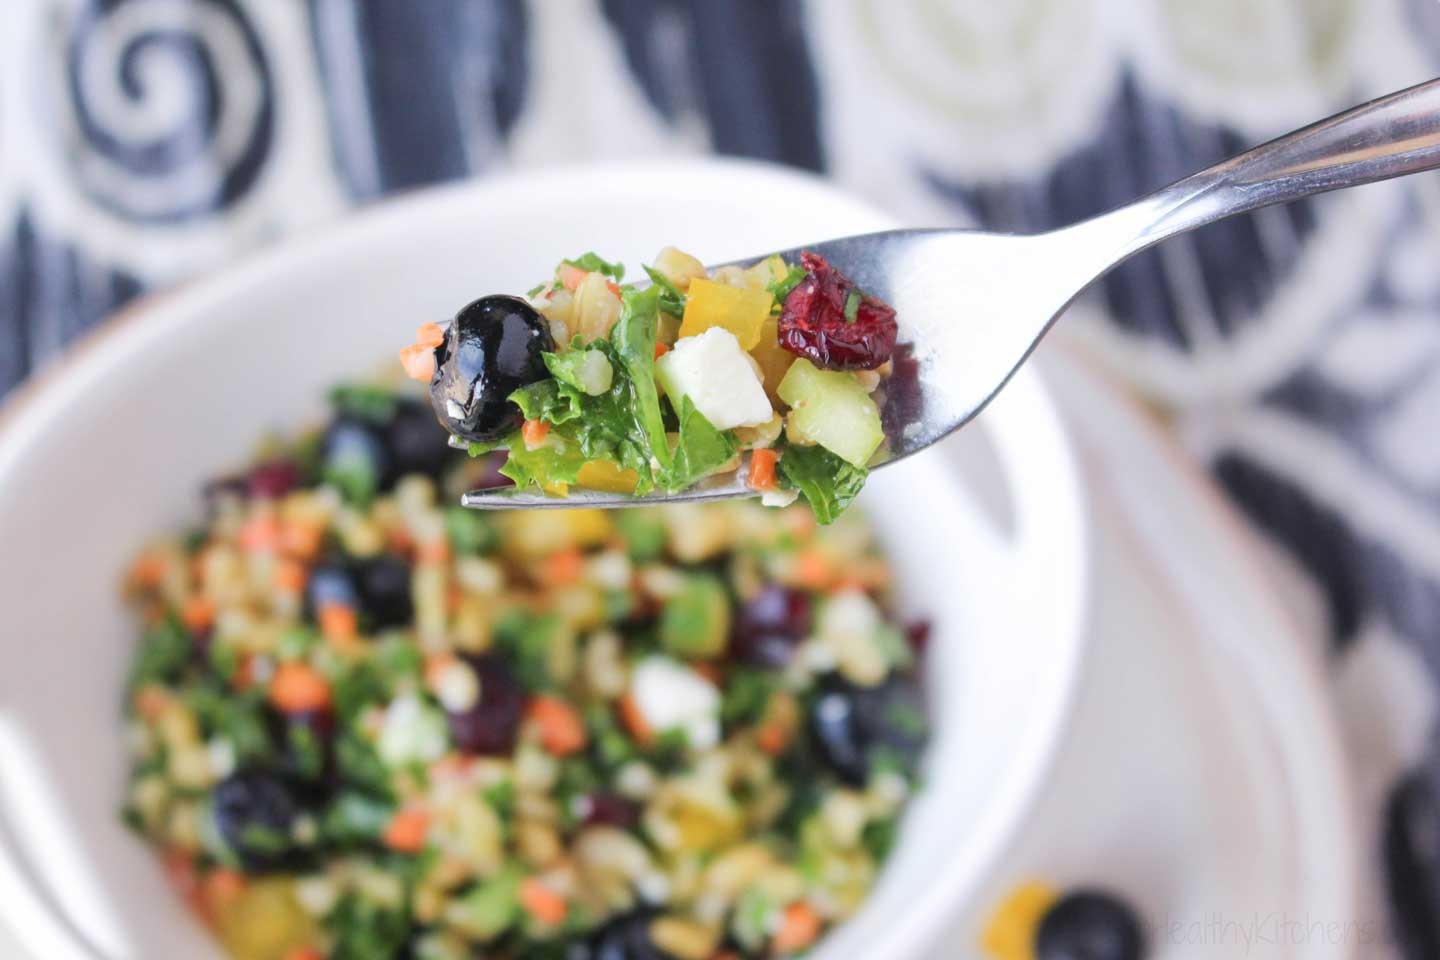 With so many great flavors and textures in every bite, you want your kale leaves to still have some life left in them – you don't want the TOO wilty. That's why confetti bits are perfect in this kale chopped salad recipe!